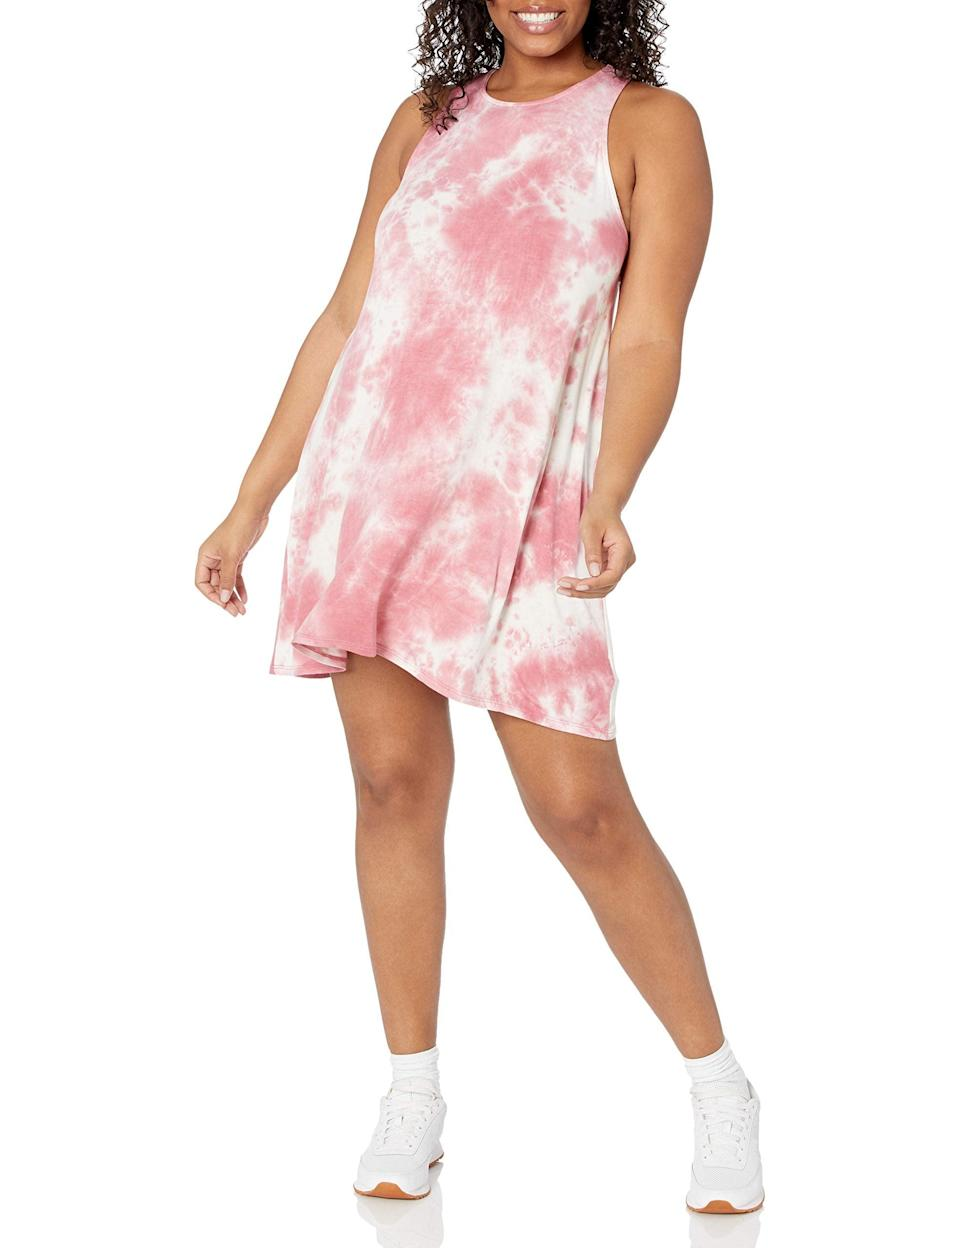 """<br><br><strong>Wild Meadow</strong> Sleeveless Tank Knit Swing Dress, $, available at <a href=""""https://amzn.to/3h7F1KI"""" rel=""""nofollow noopener"""" target=""""_blank"""" data-ylk=""""slk:Amazon"""" class=""""link rapid-noclick-resp"""">Amazon</a>"""